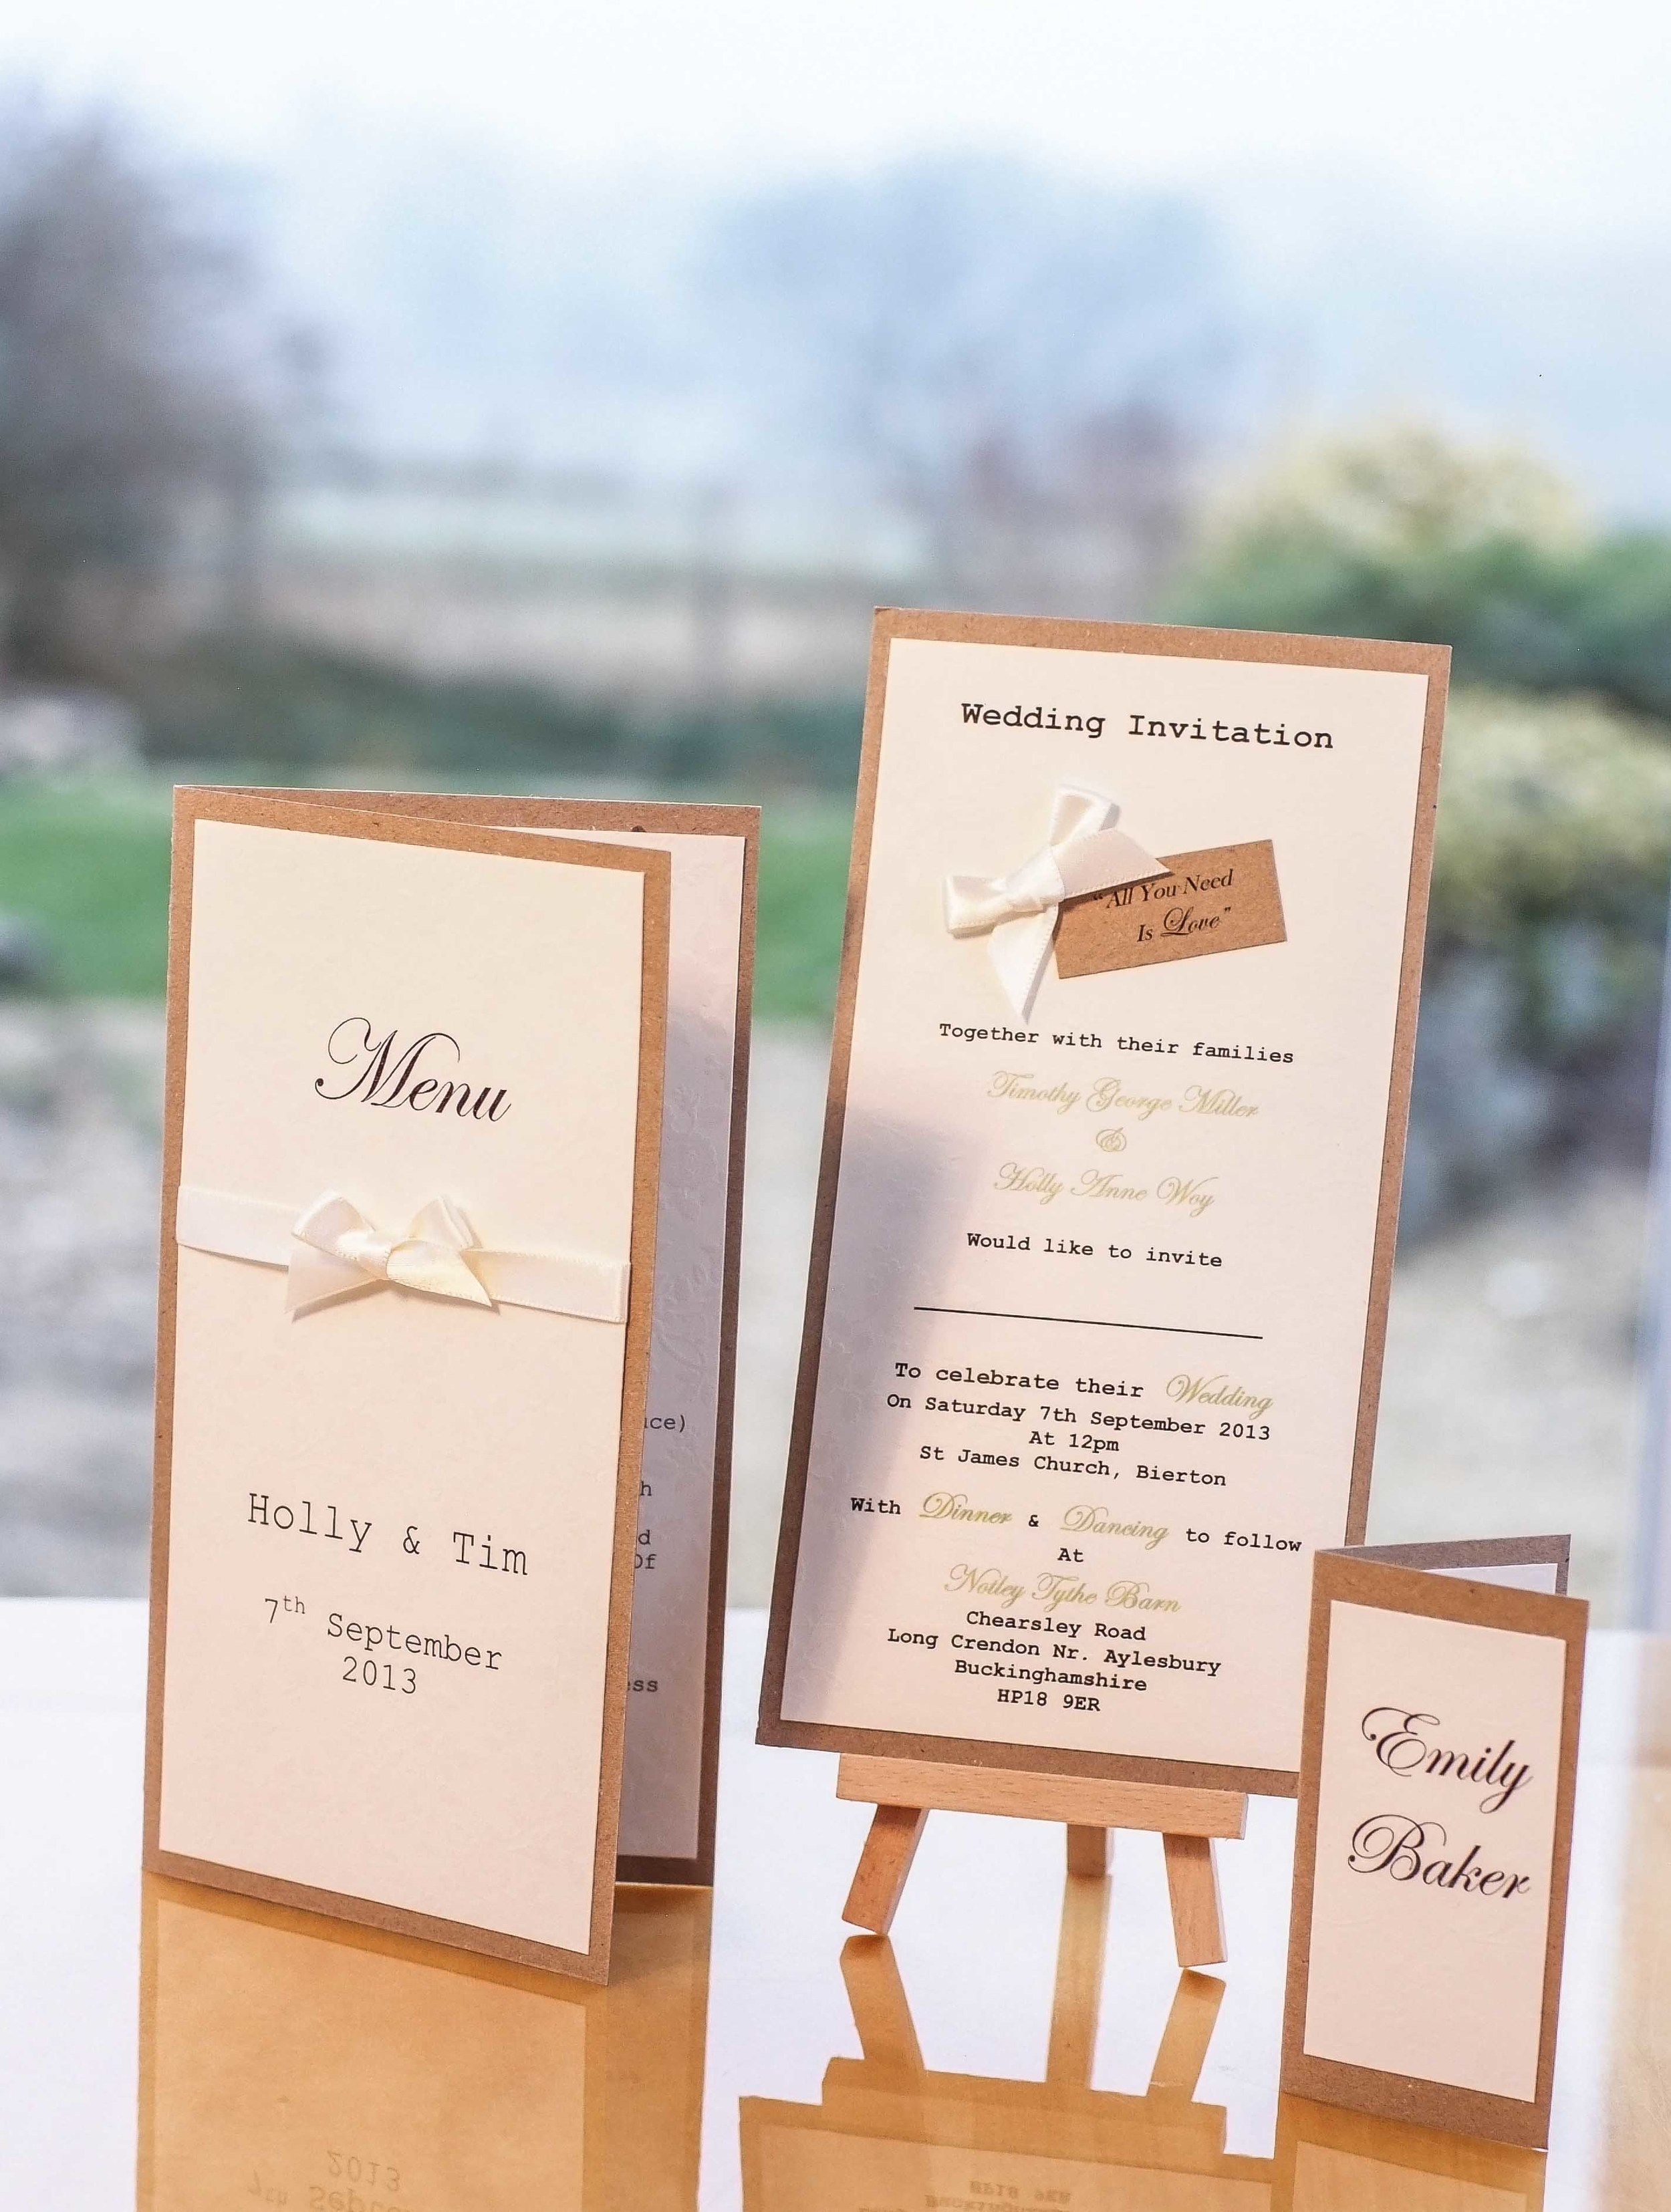 All You Need Is Love Wedding Invitation